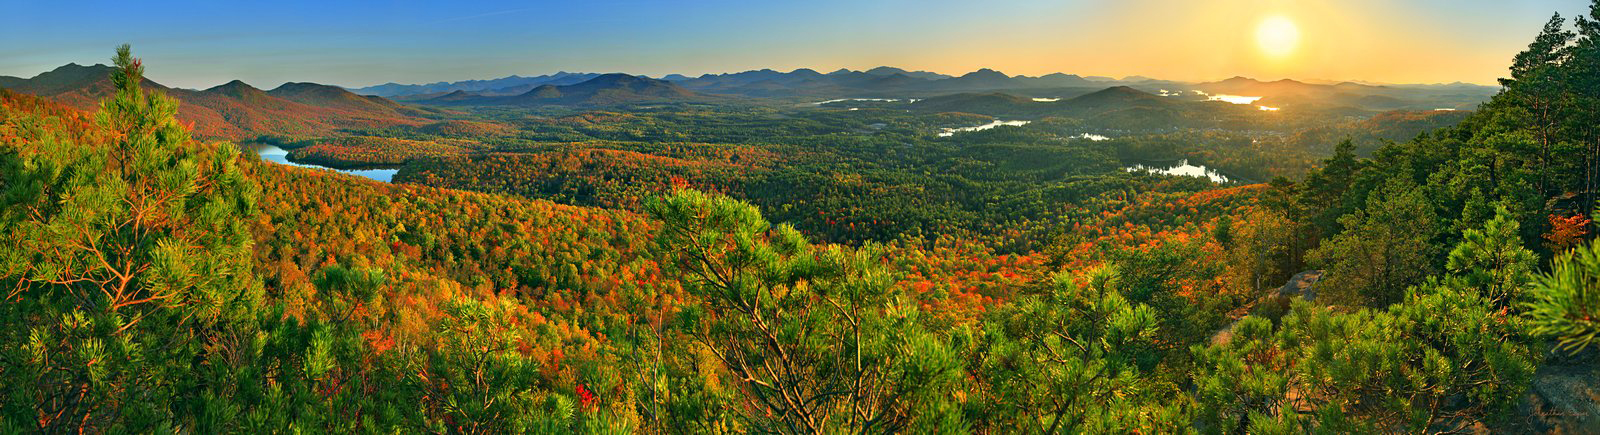 Baker Mt,Saranac Lake,treetop,panorama,fall,2011,Saranac Lakes,McKenzie Mt,High Peaks,Adirondack,mountains,McKenzie Pond,Saranac Lake village,, photo